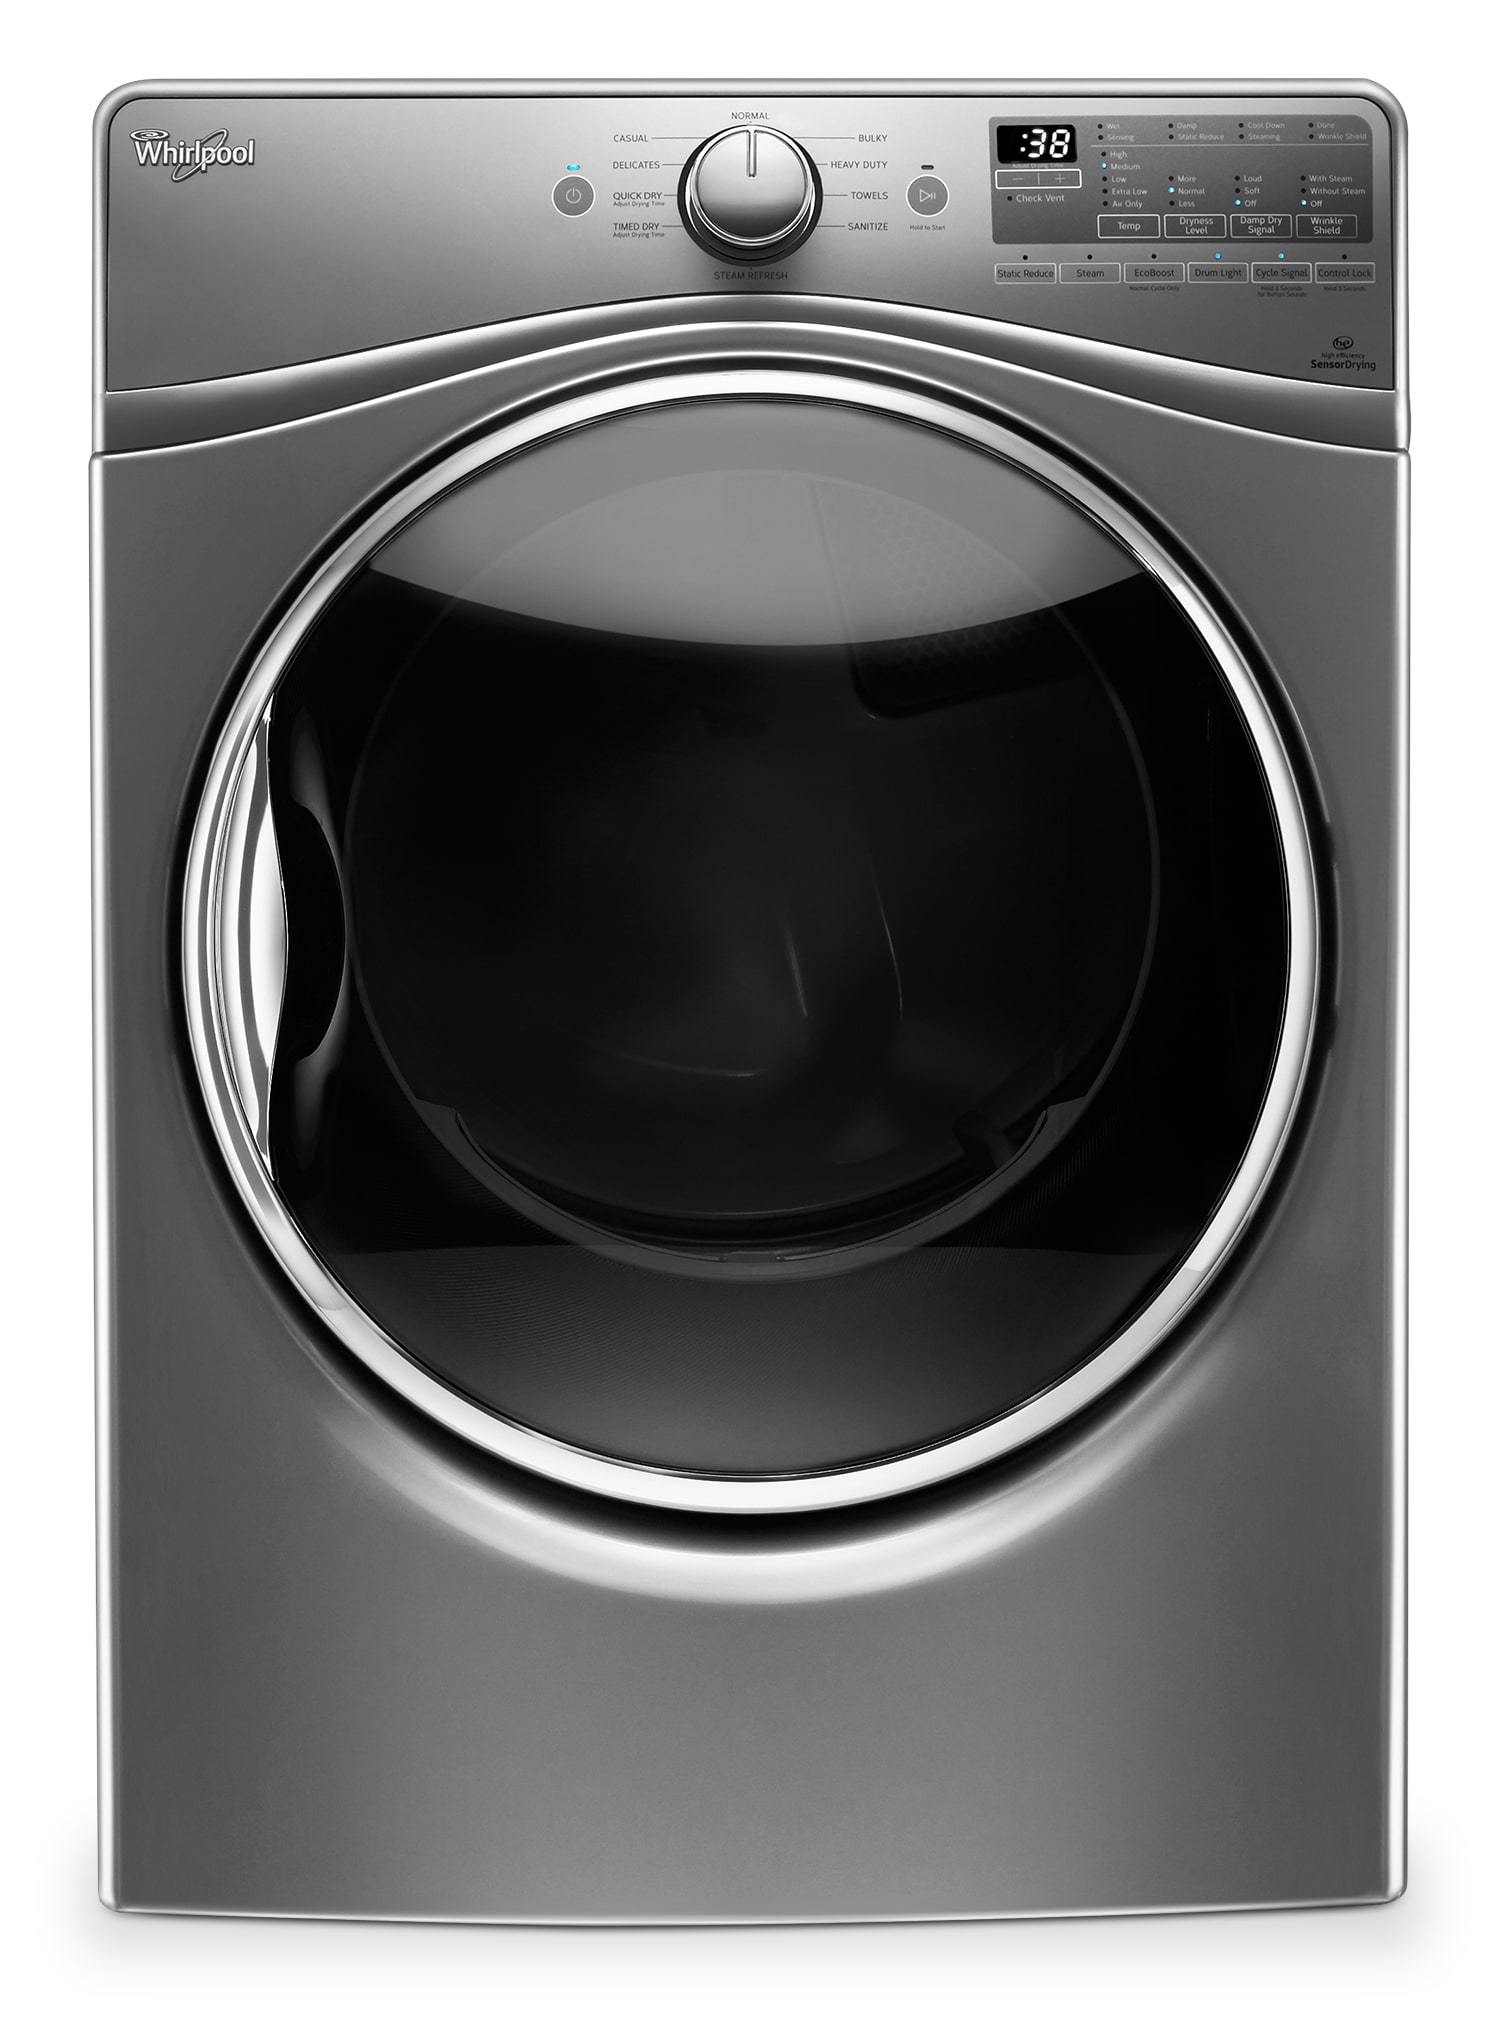 Washers and Dryers - Whirpool Chrome Shadow Electric Dryer (8.5 Cu. Ft.) - YWED92HEFC